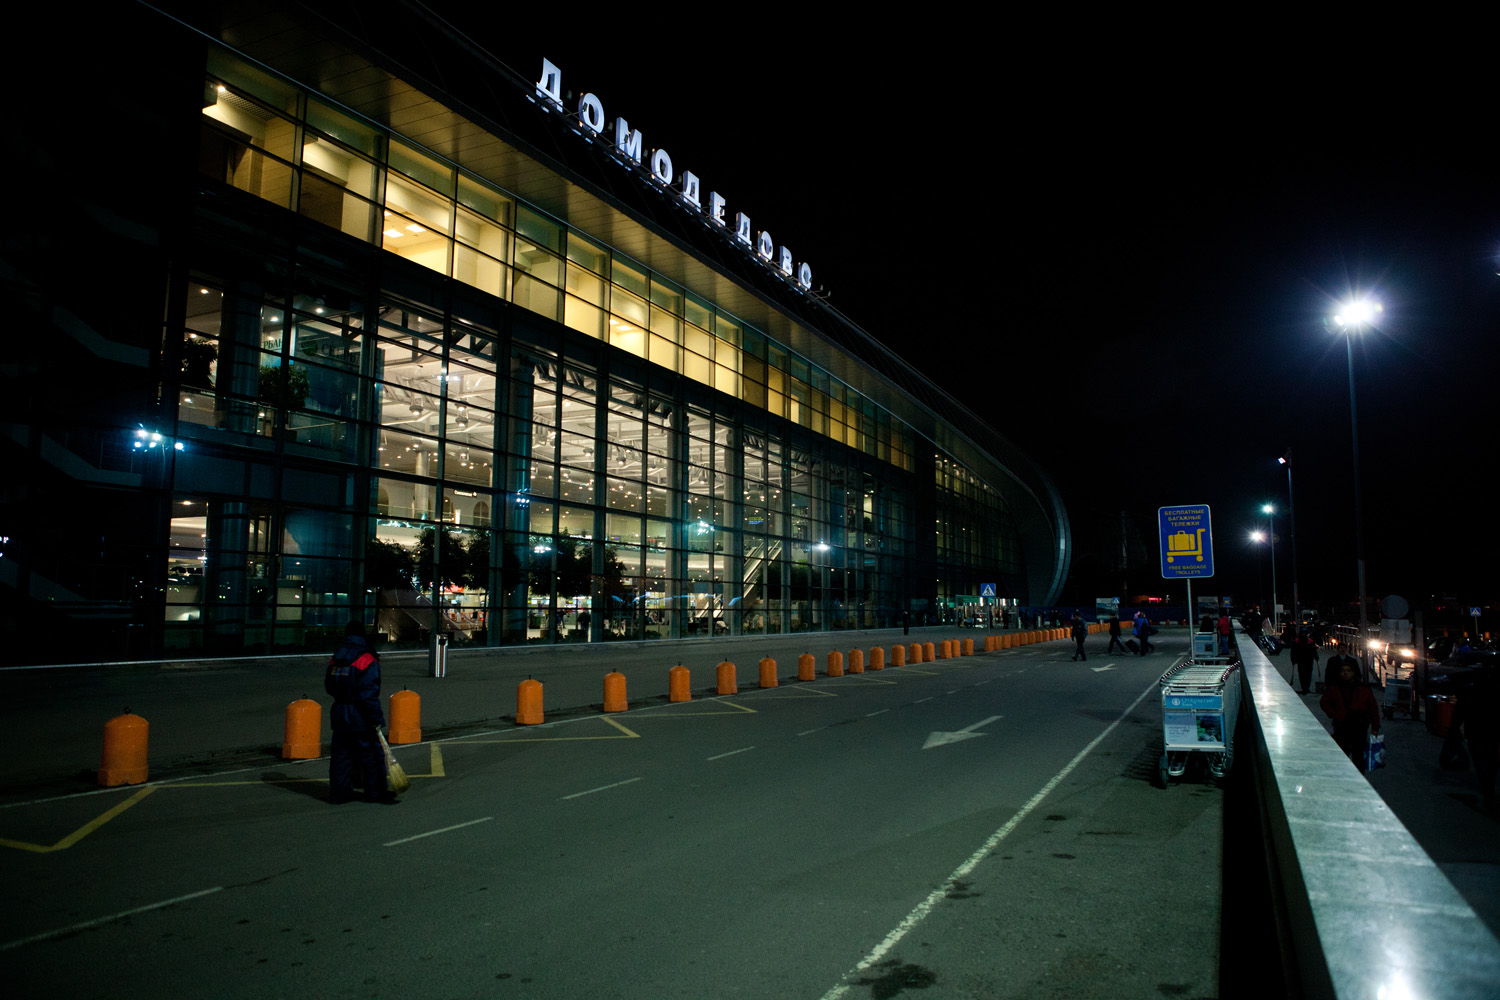 moscow-domodedovo-airport_8225544276_o.jpg